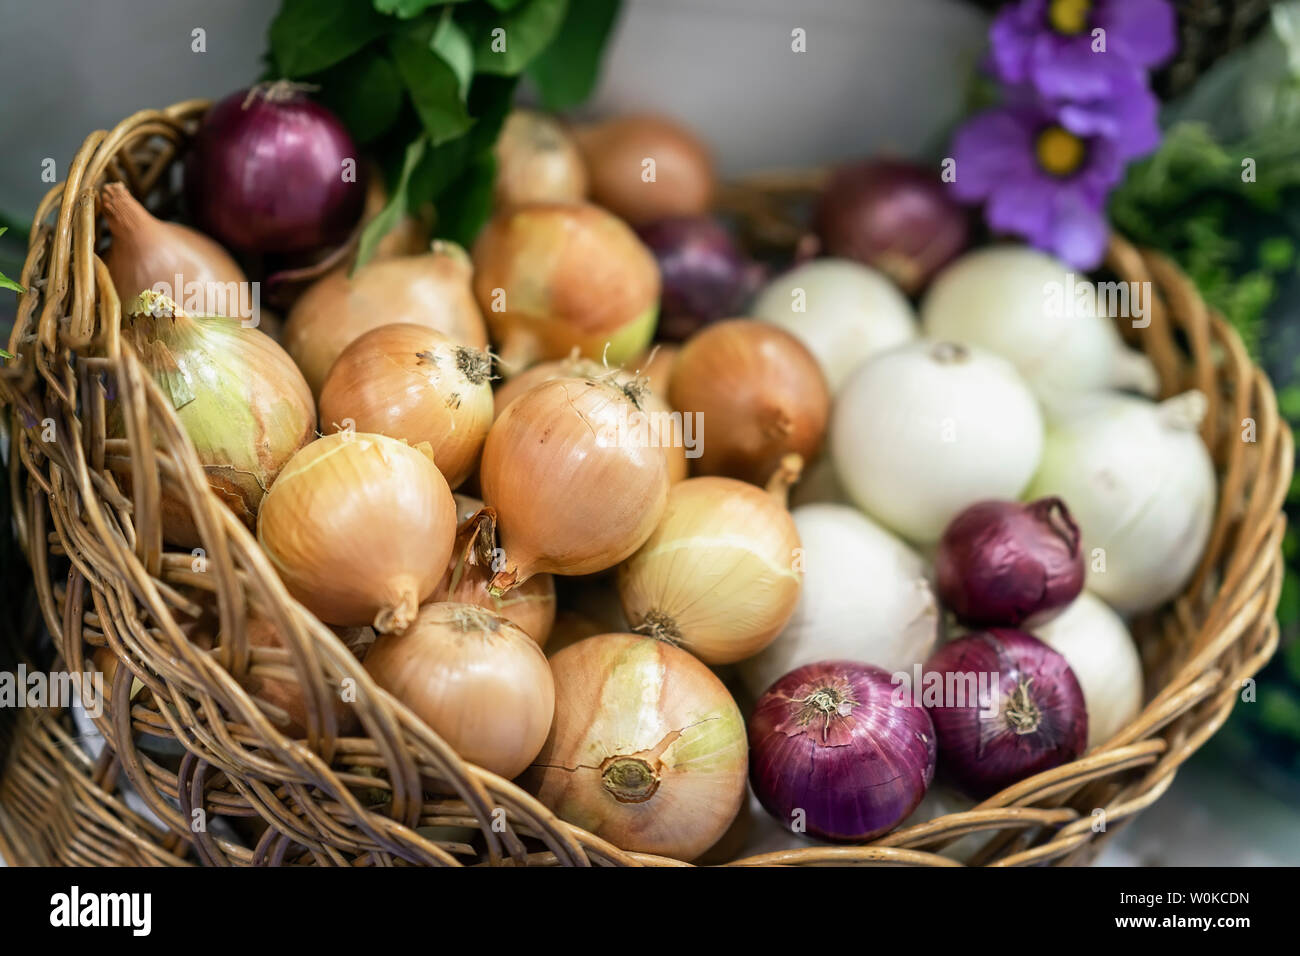 Assorted onions of different varieties. Basket with fresh organic vegetables, Live vitamins, selectiv focus. Farmers market - Stock Image